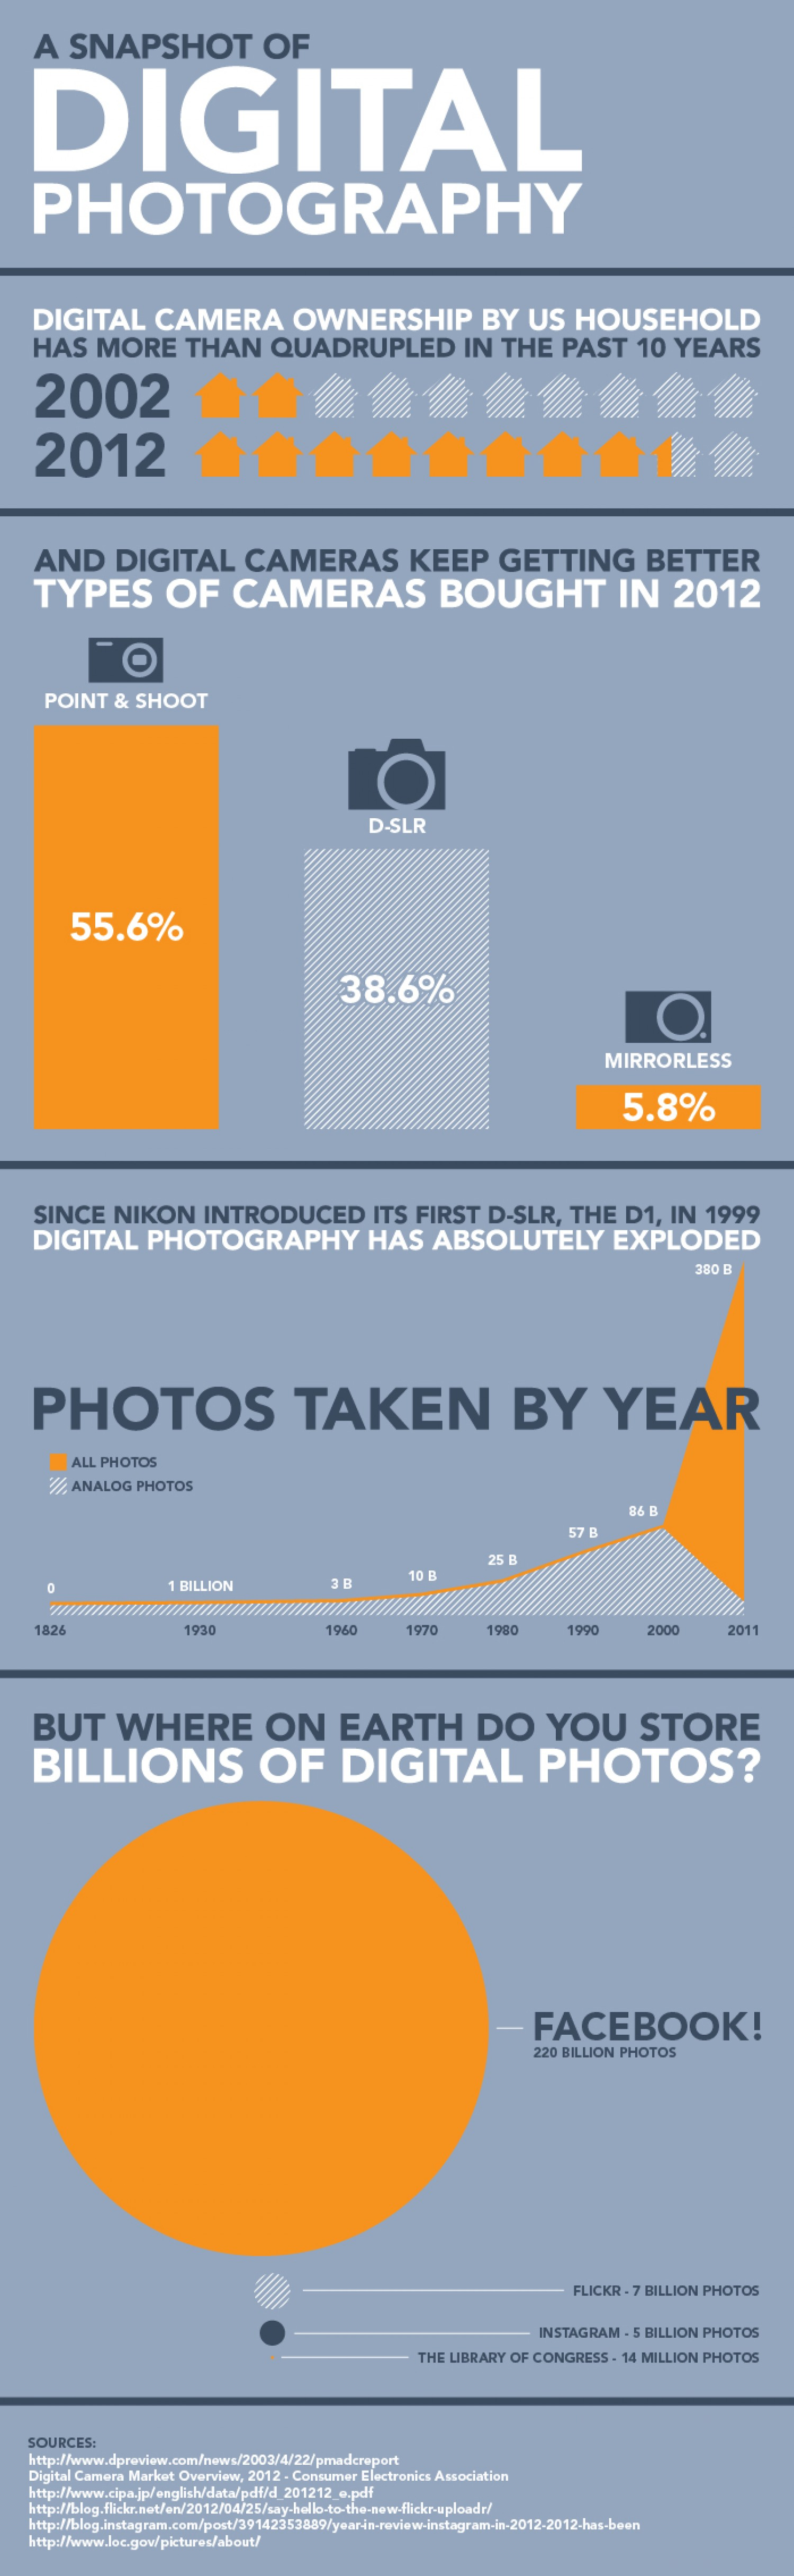 9. A snapshot of digital photography in the US